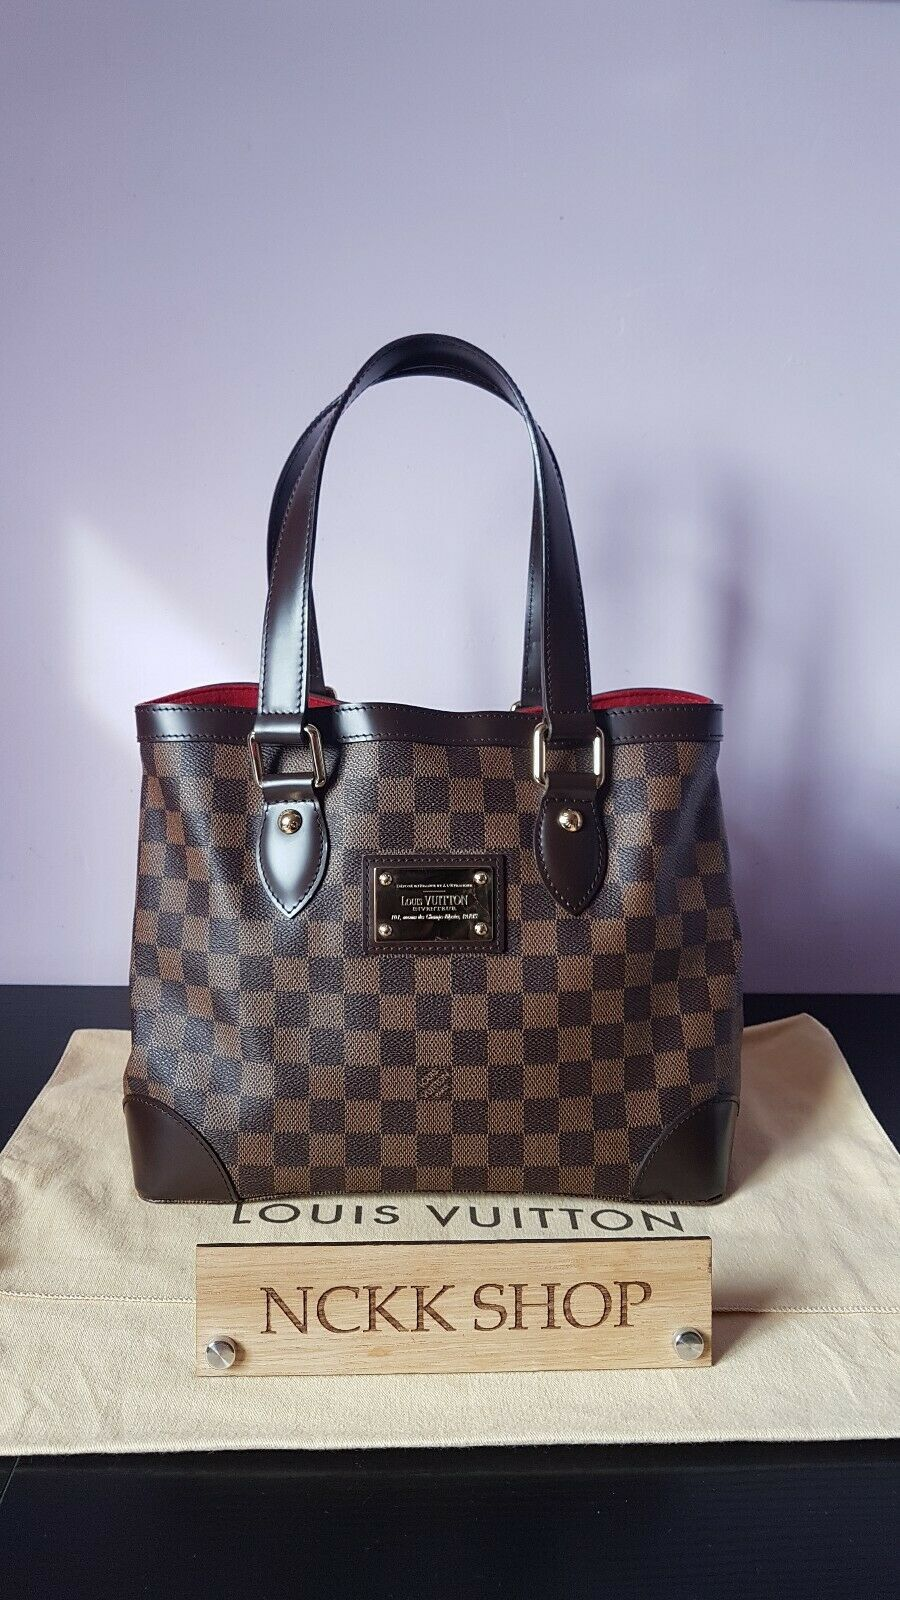 Louis Vuitton Hampstead PM Damier Ebene Canvas Schultertasche/Handtasche n51205 - 935.10,Kaufpreis 935,1,datum 01.07.2020 22:12:38,Website rebelle.com